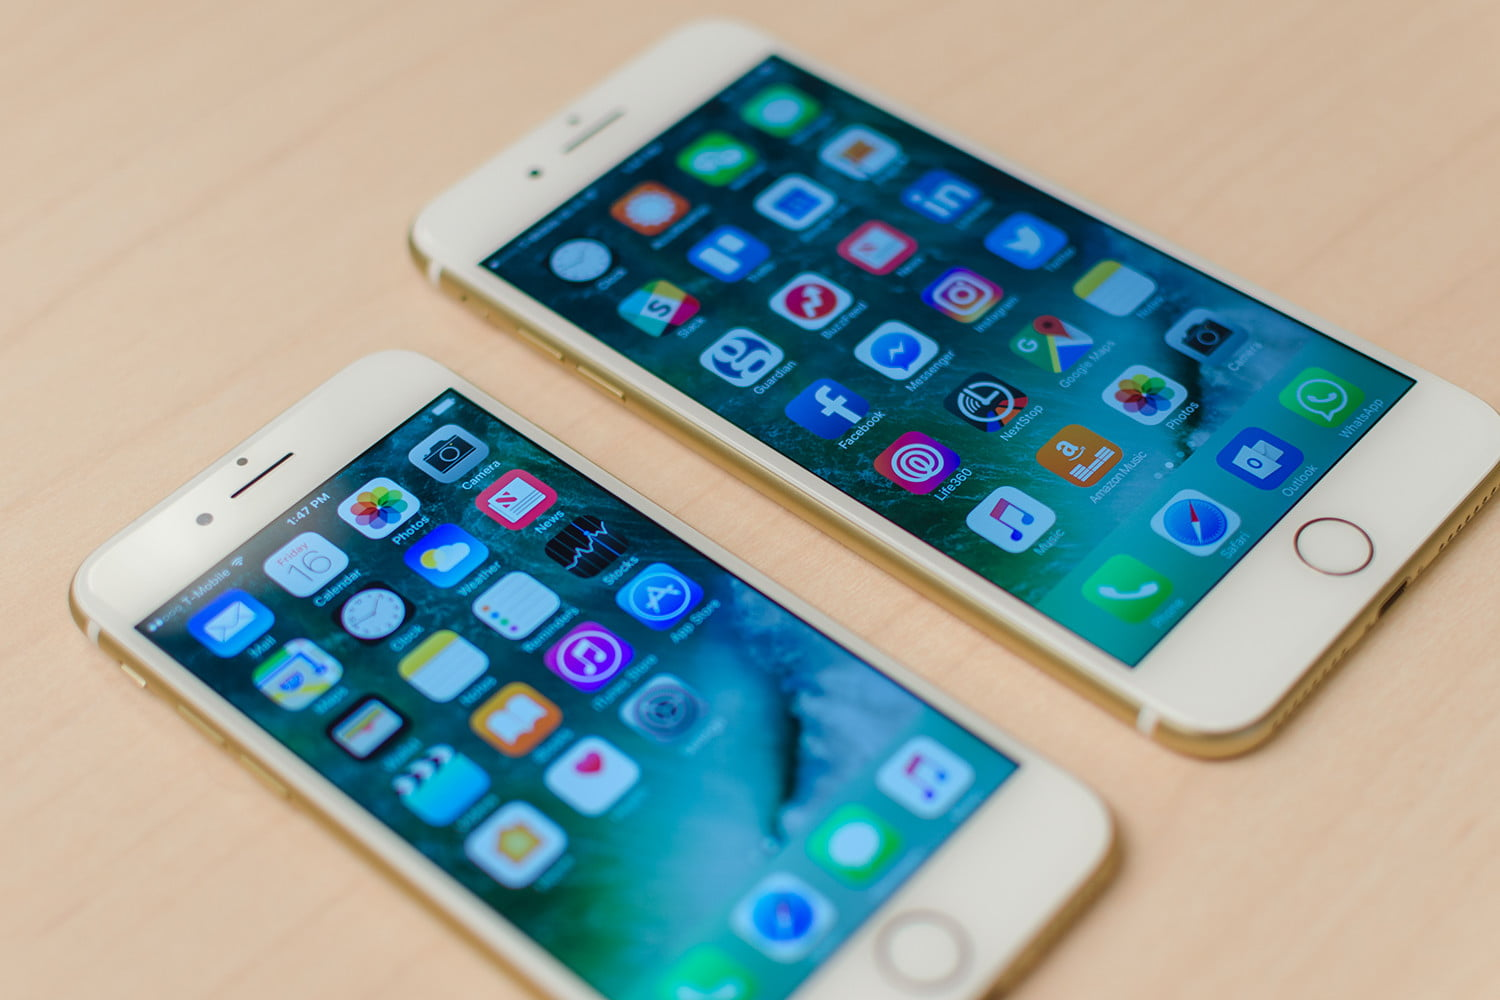 Performance dip on your iPhone? Here's everything you need to know